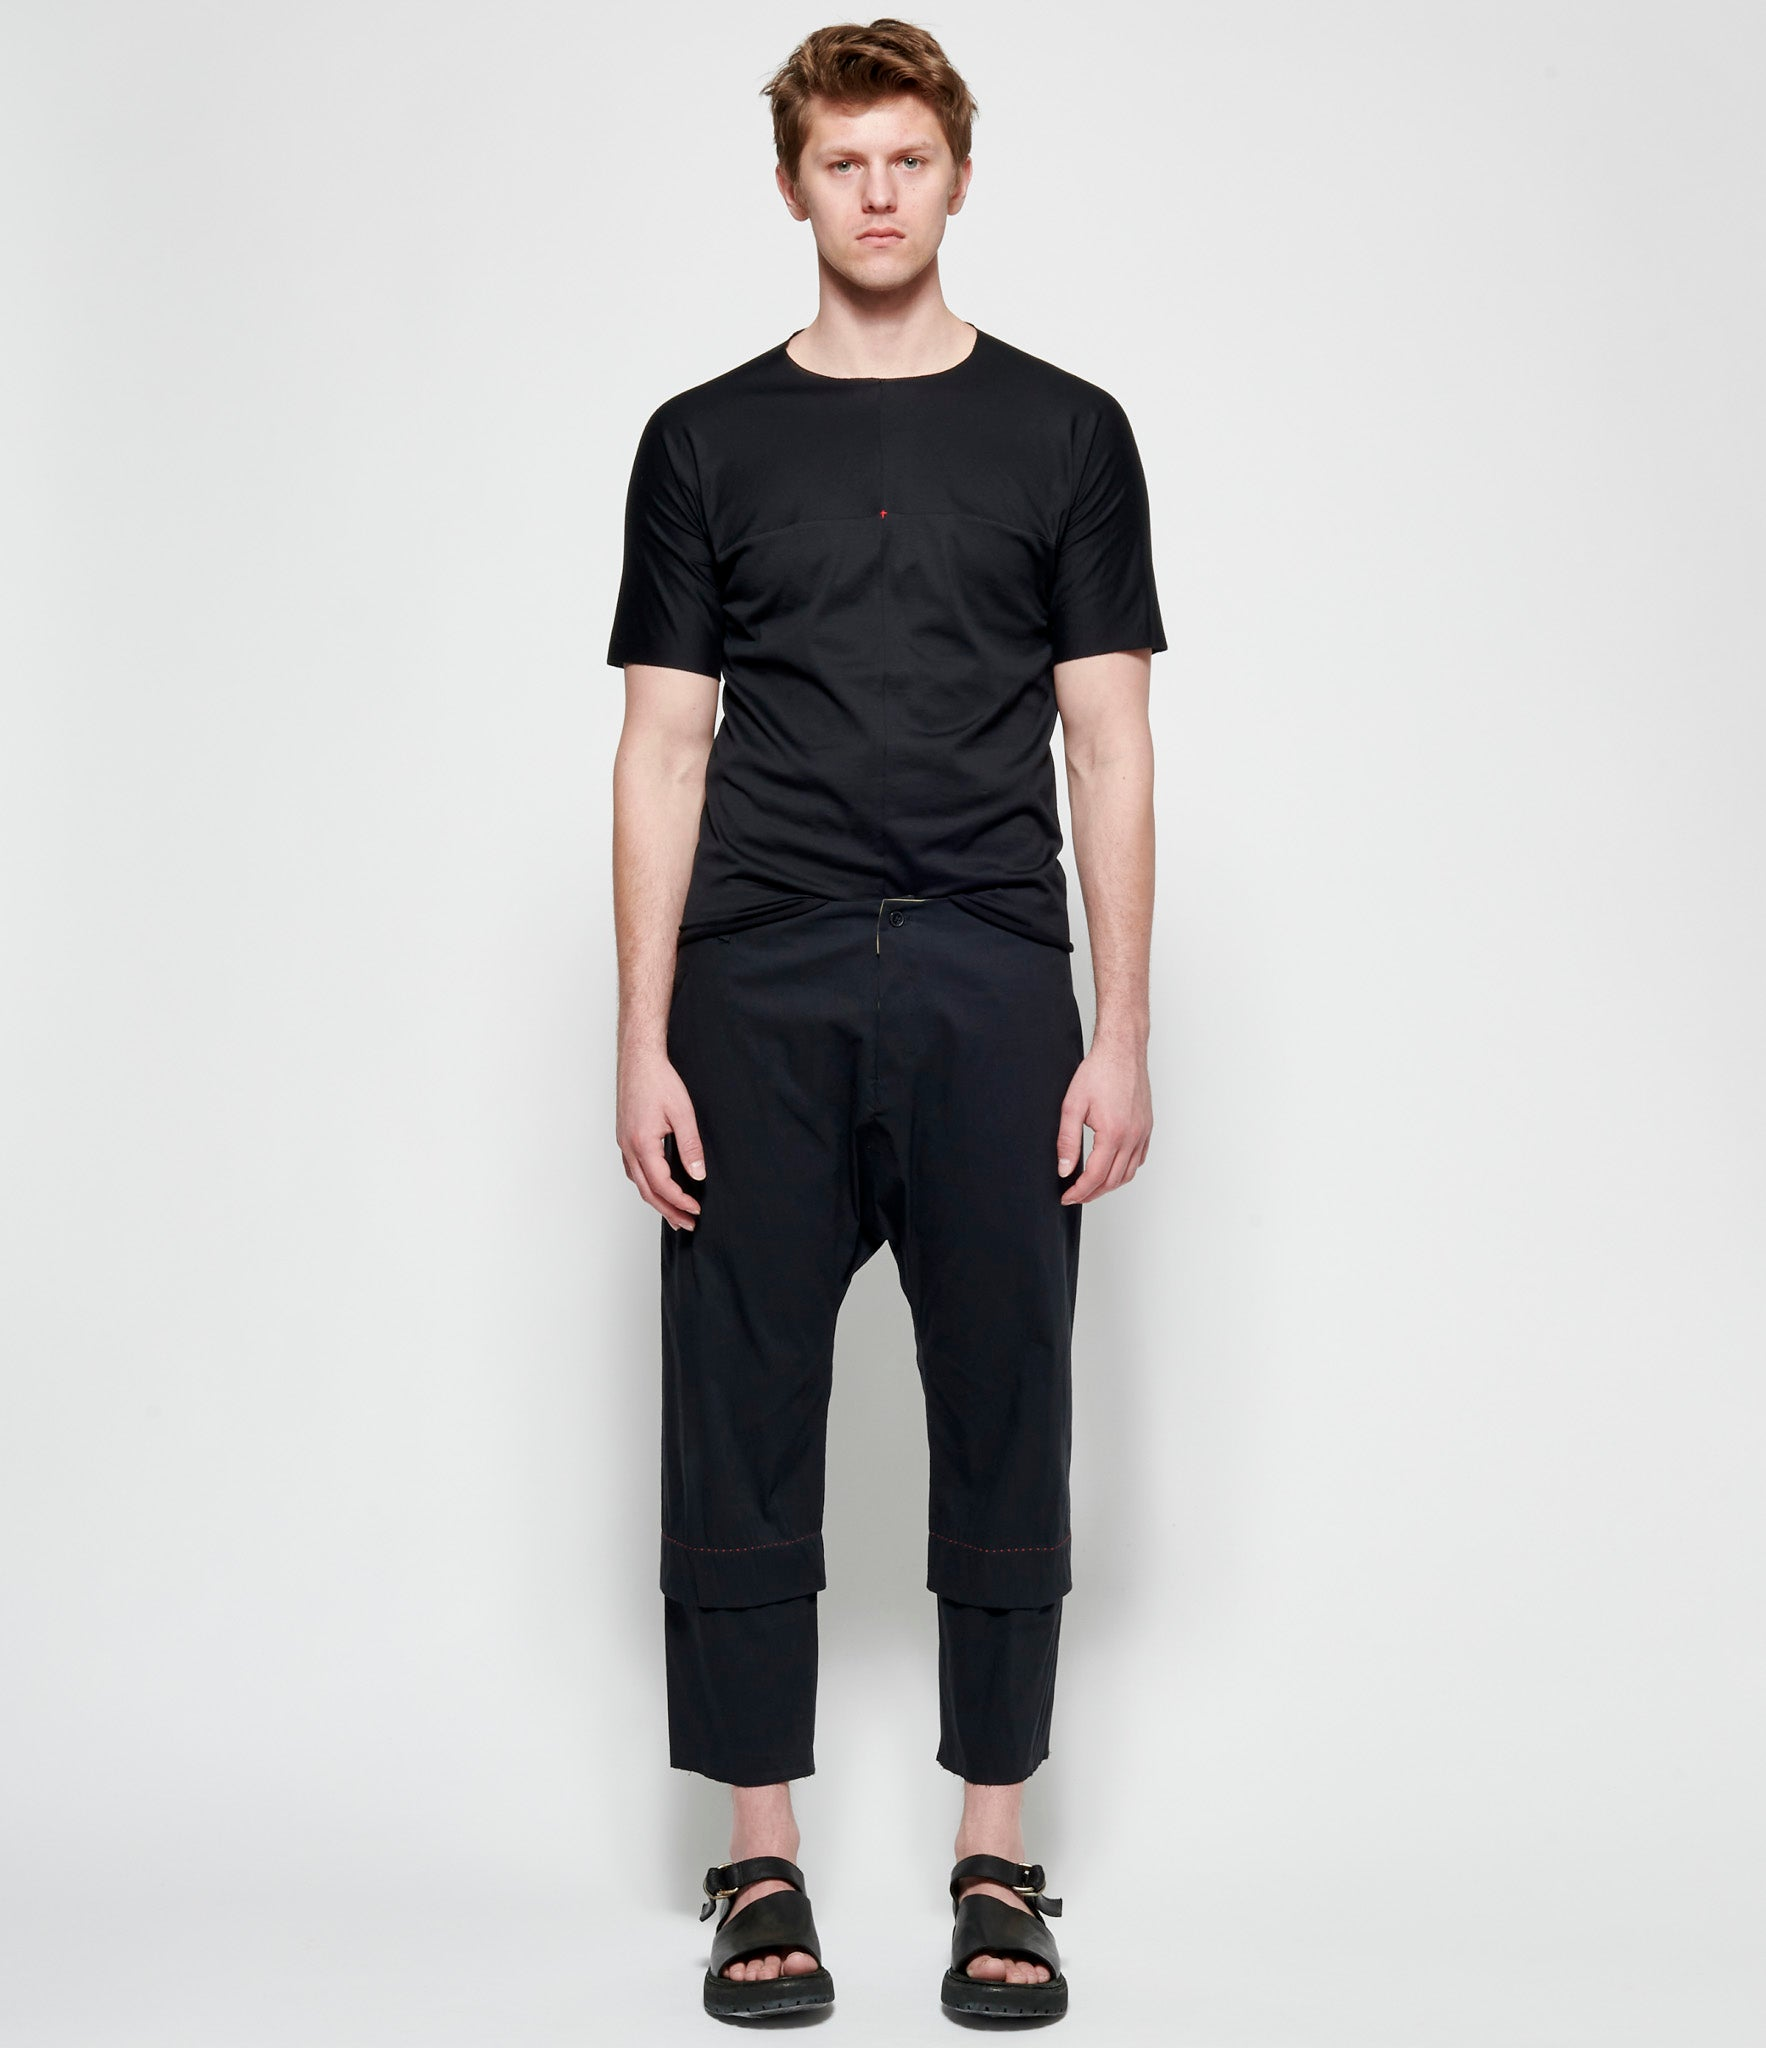 m.a+ Black One Pice Short Sleeve T-Shirt